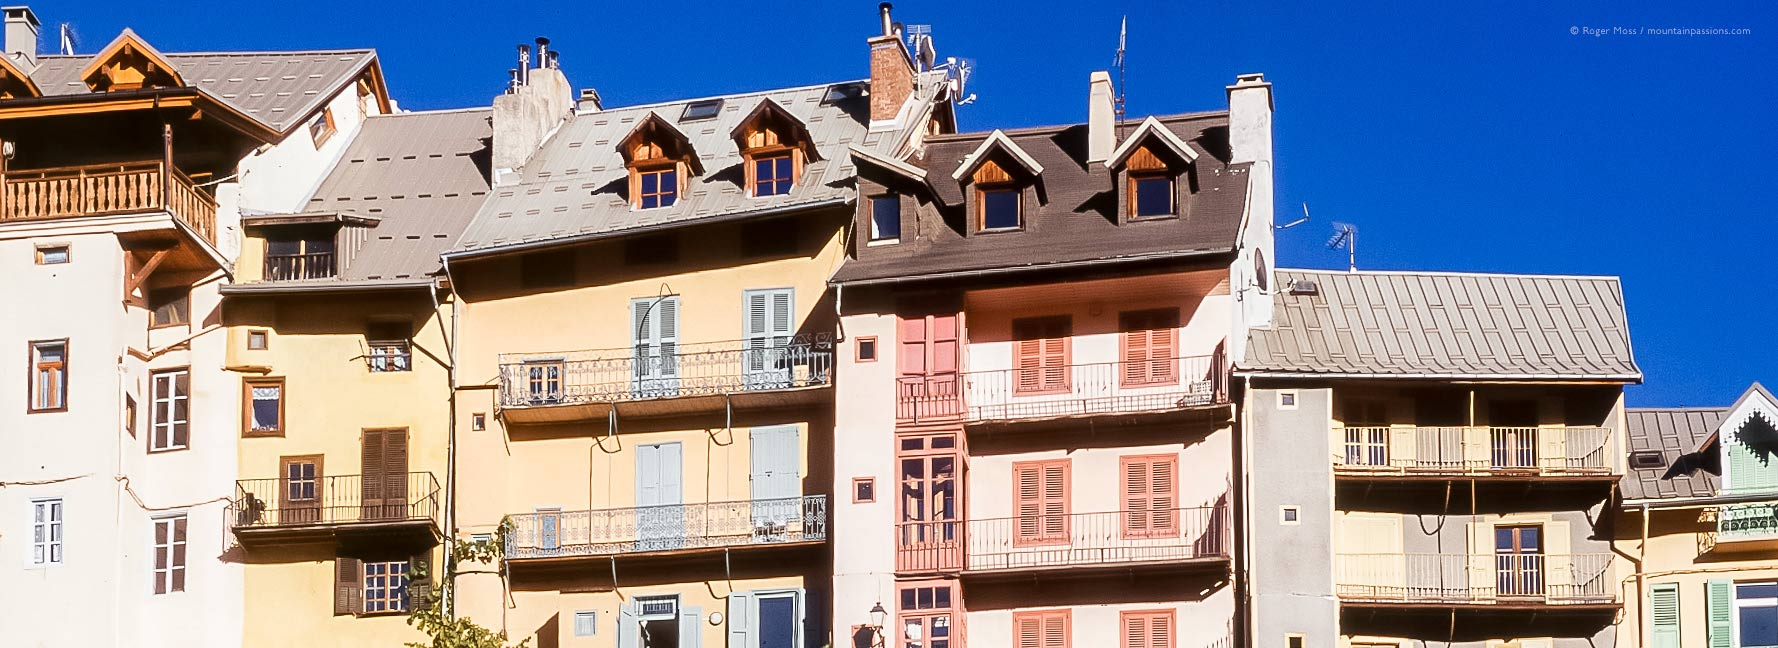 Line of brightly-coloured facades in Briancon, French Alps.